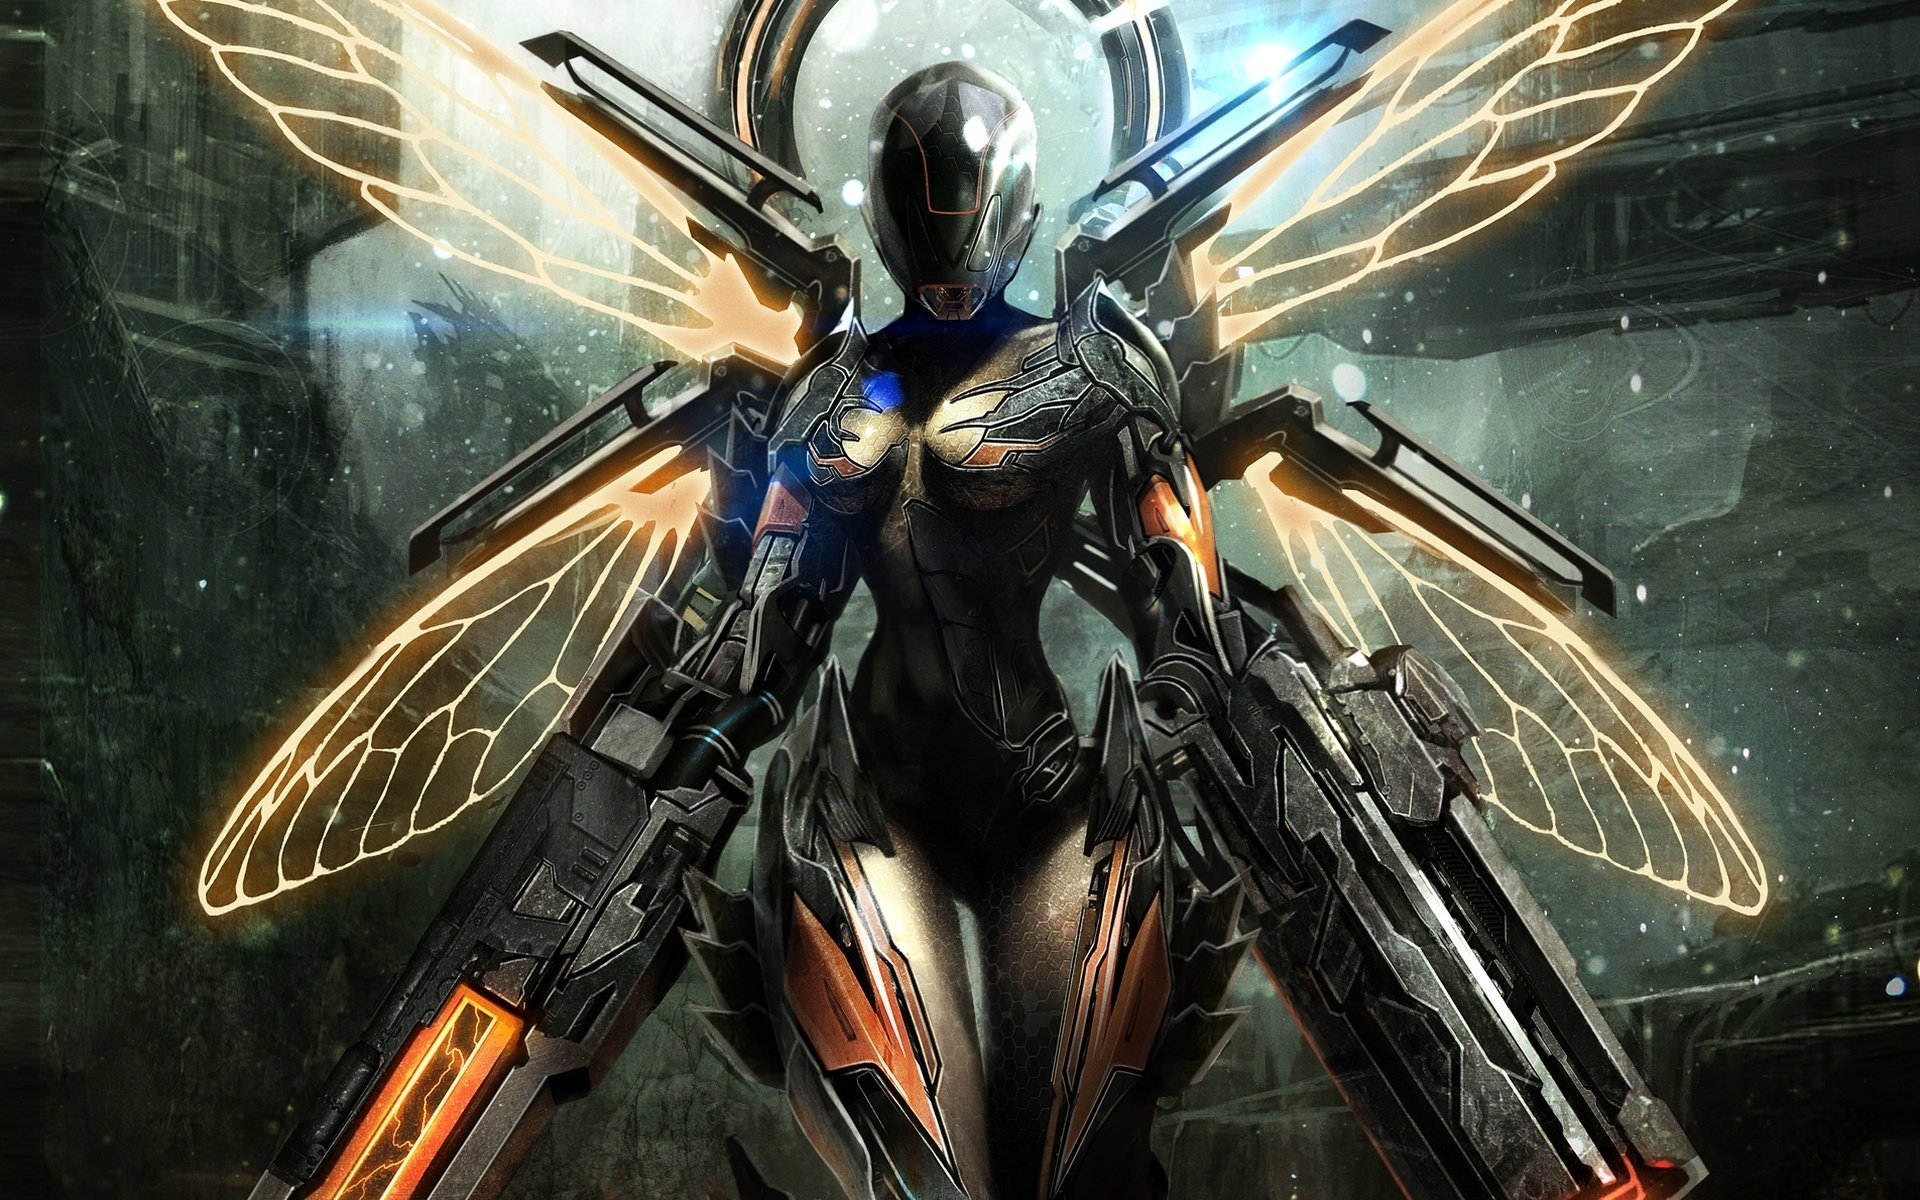 girl fairy armor gun fantasy sci-fi robot cyborg weapon wallpaper